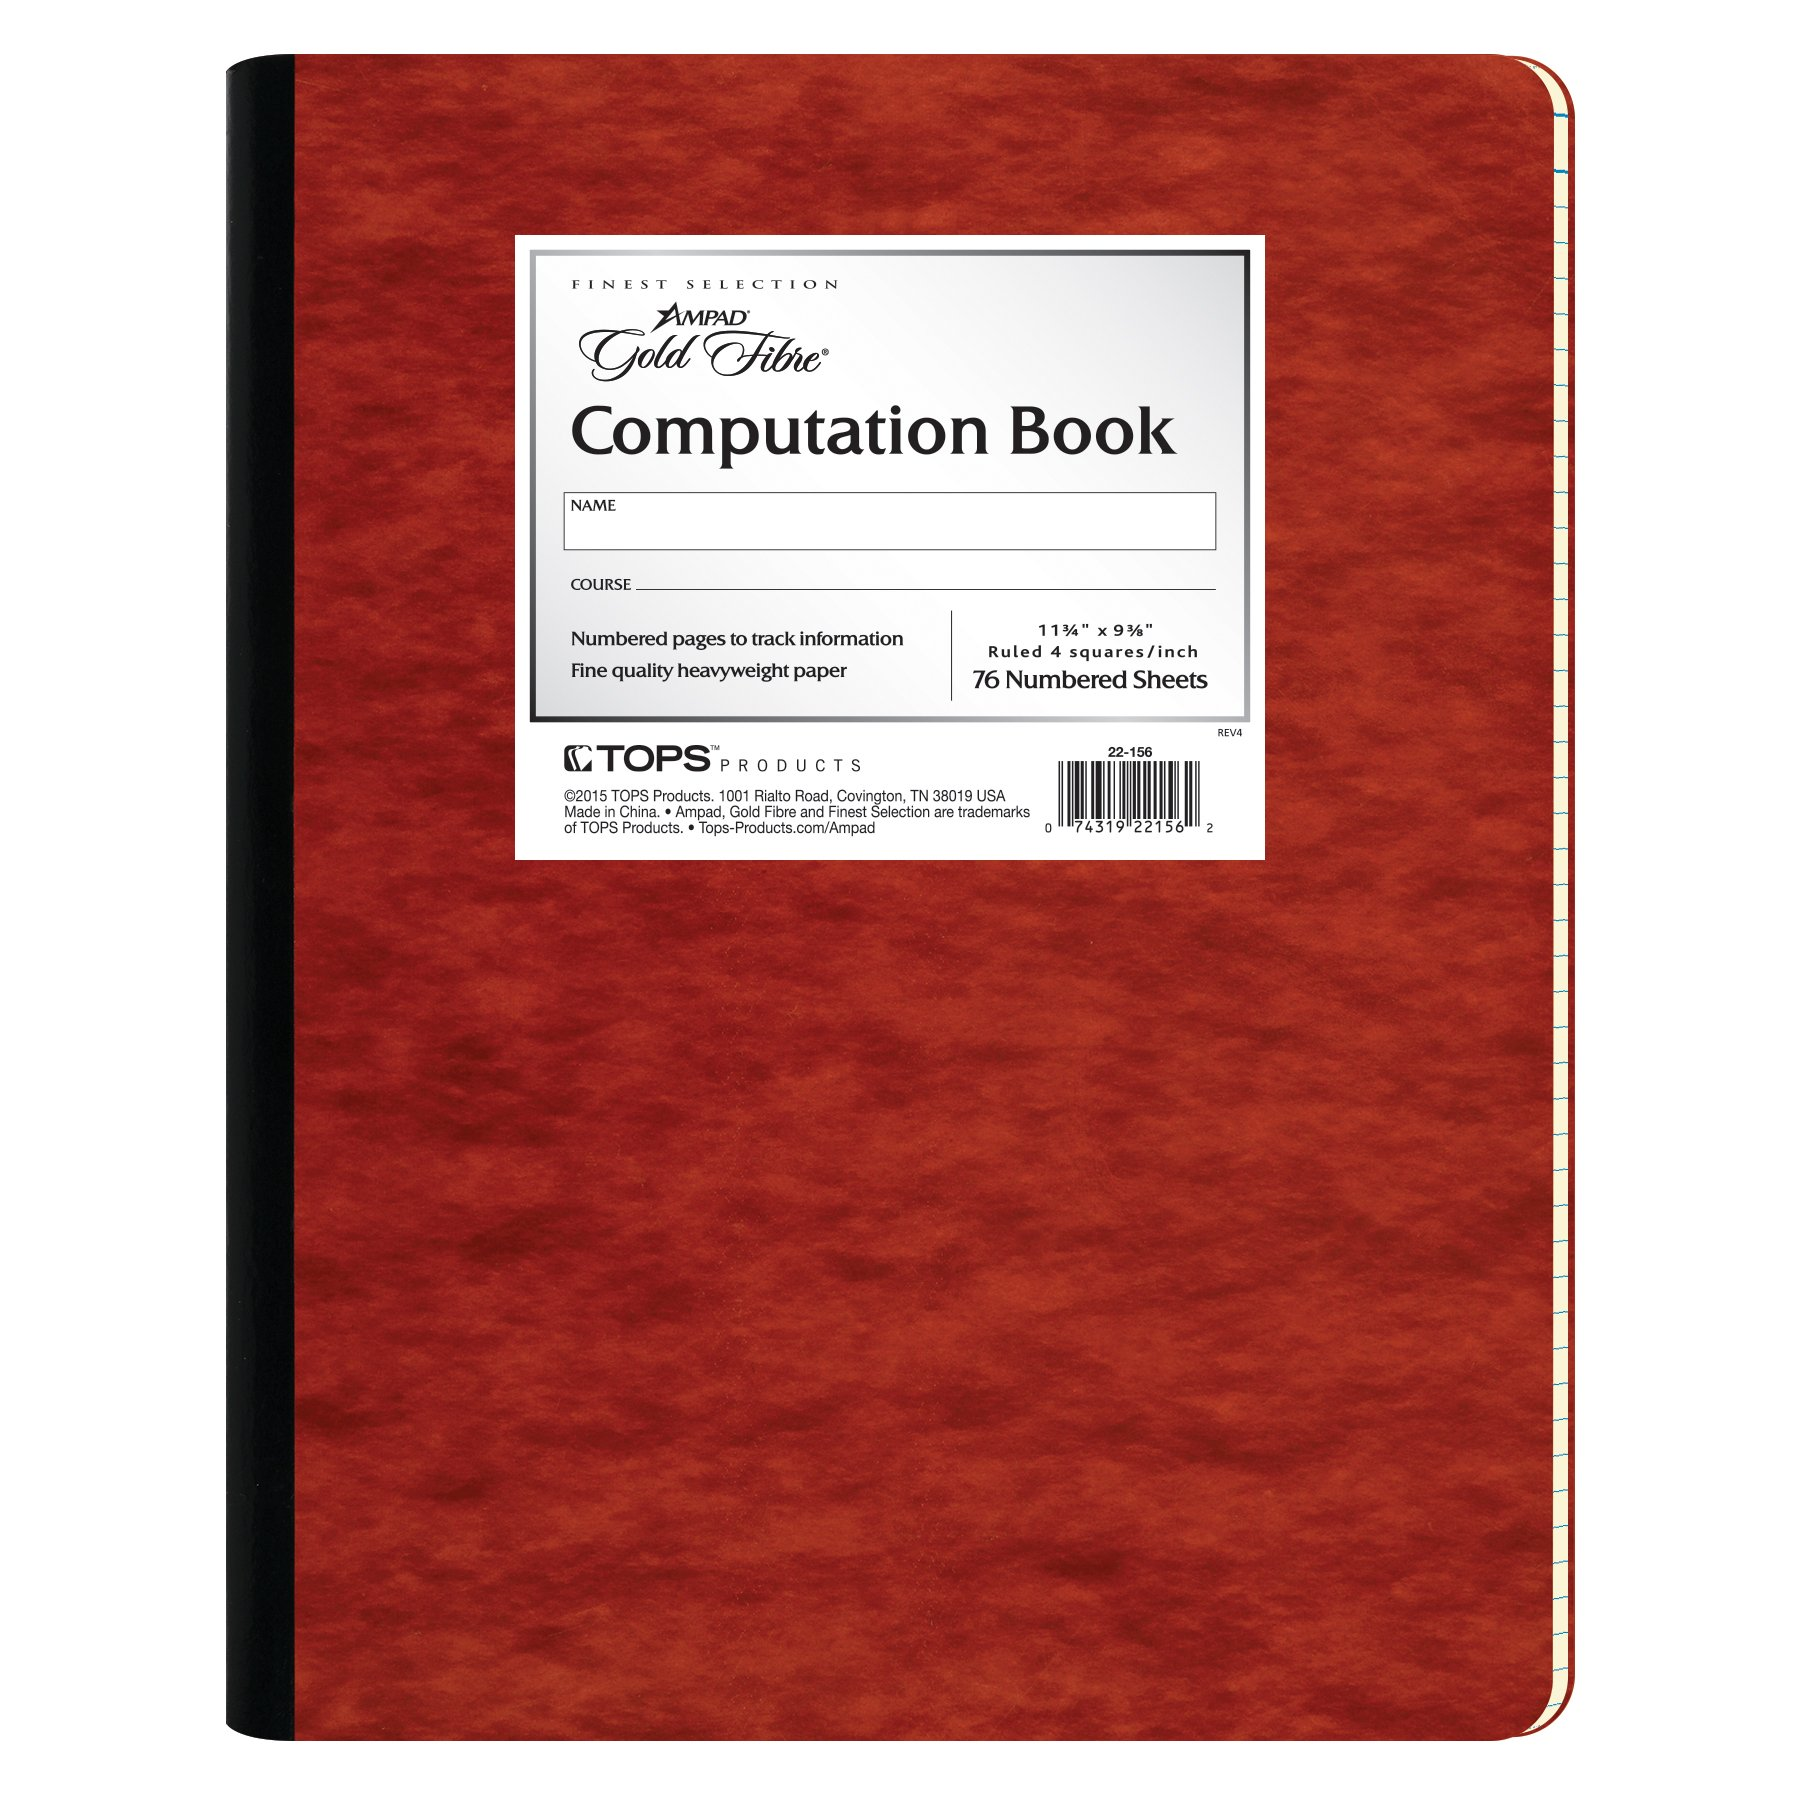 Ampad Gold Fibre Computation Book, Red Cover, Ivory Paper, Letter Size, 4 Square Inch Rule, 76 Sheets, 1 Each (22-156) by Ampad